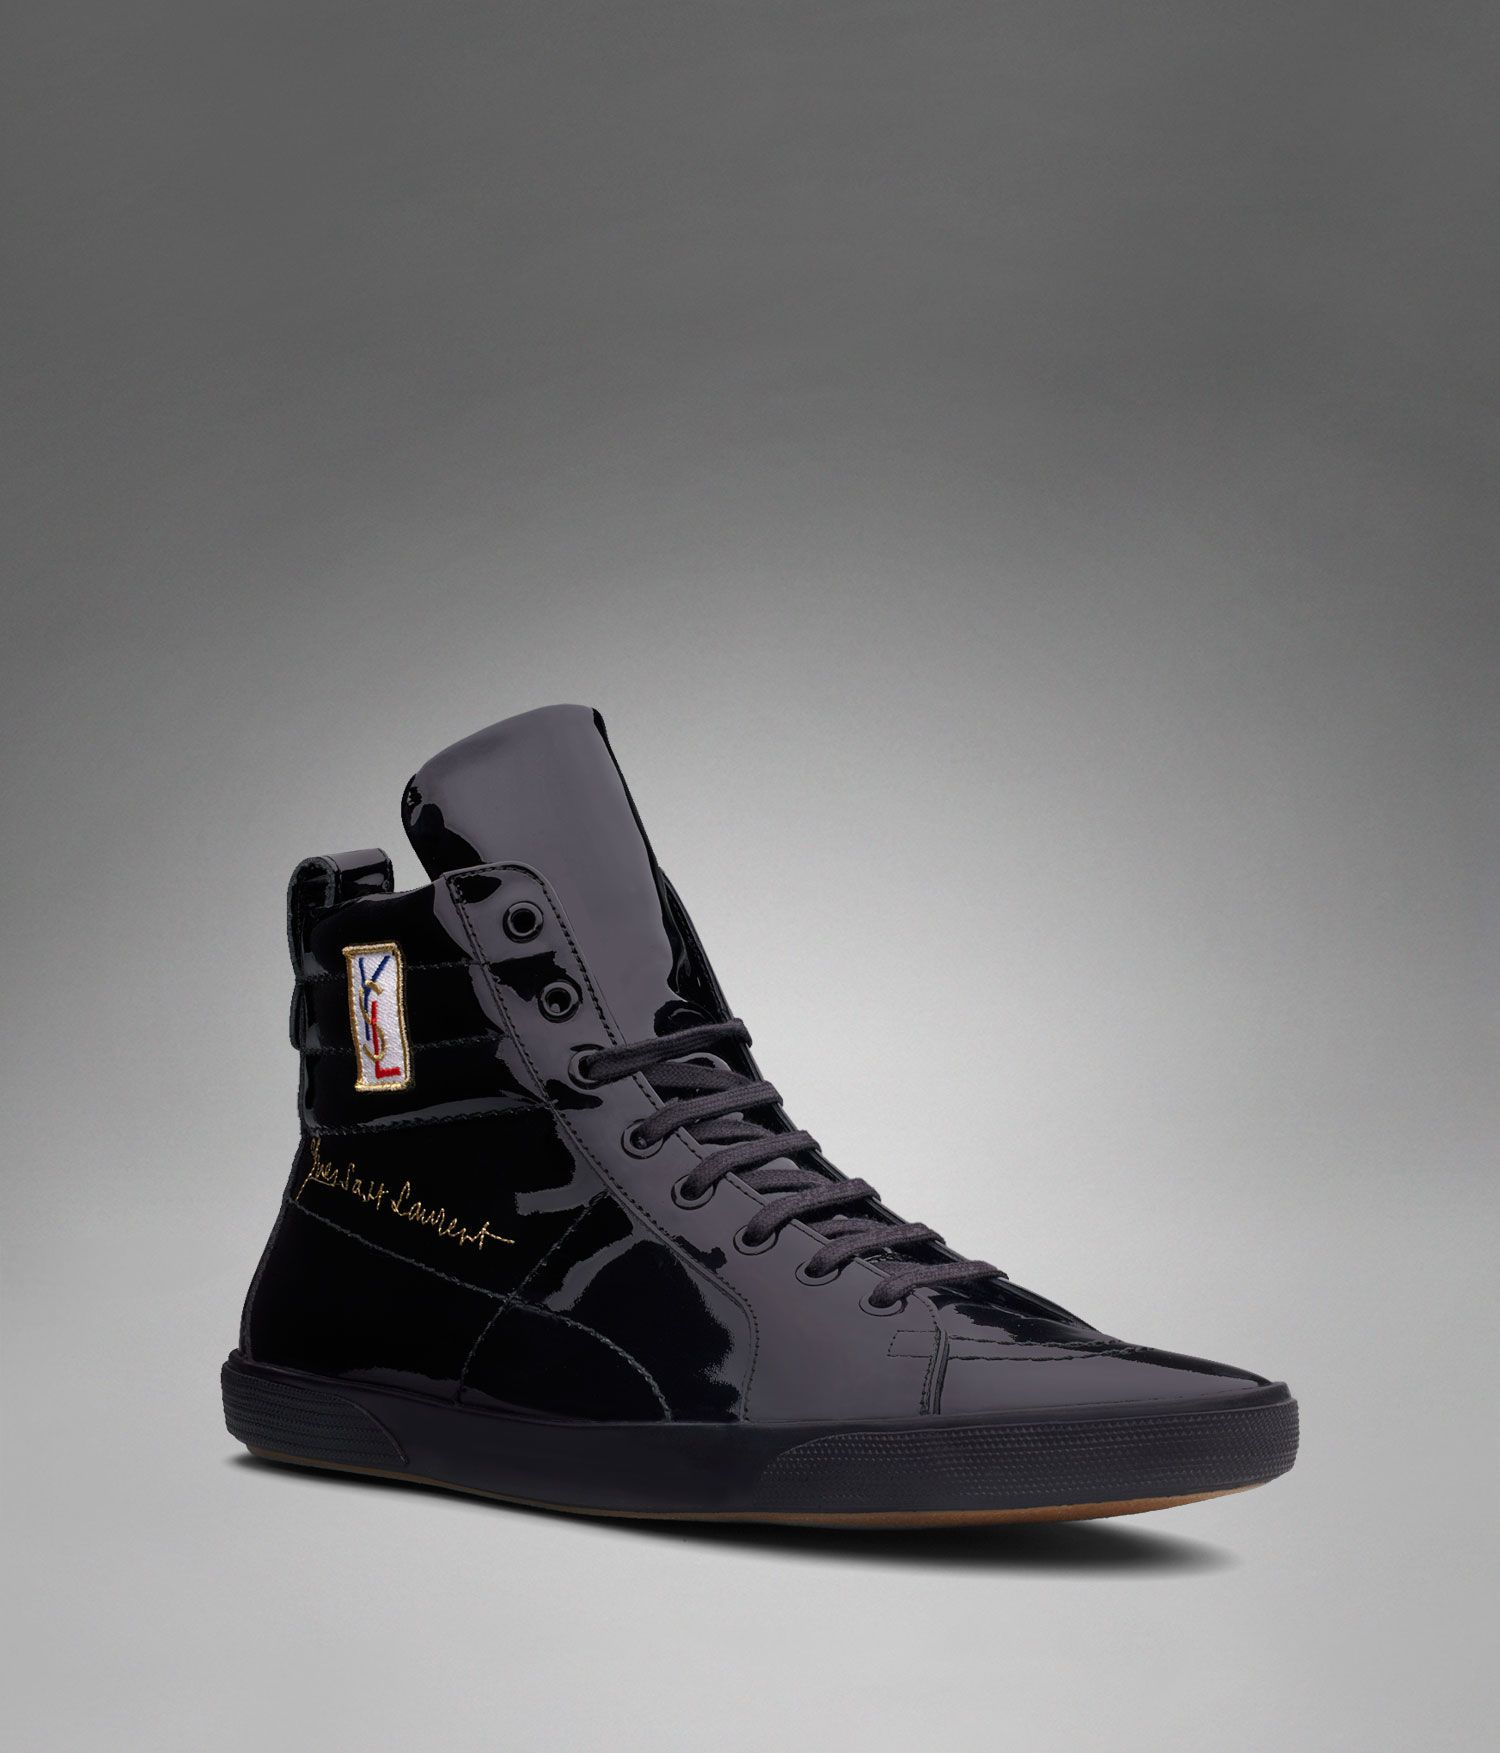 cd0d29d93242 YSL Classic High-top Sneaker in Black Patent Leather - Sneakers – Shoes –  Men – Yves Saint Laurent – www.ysl.com